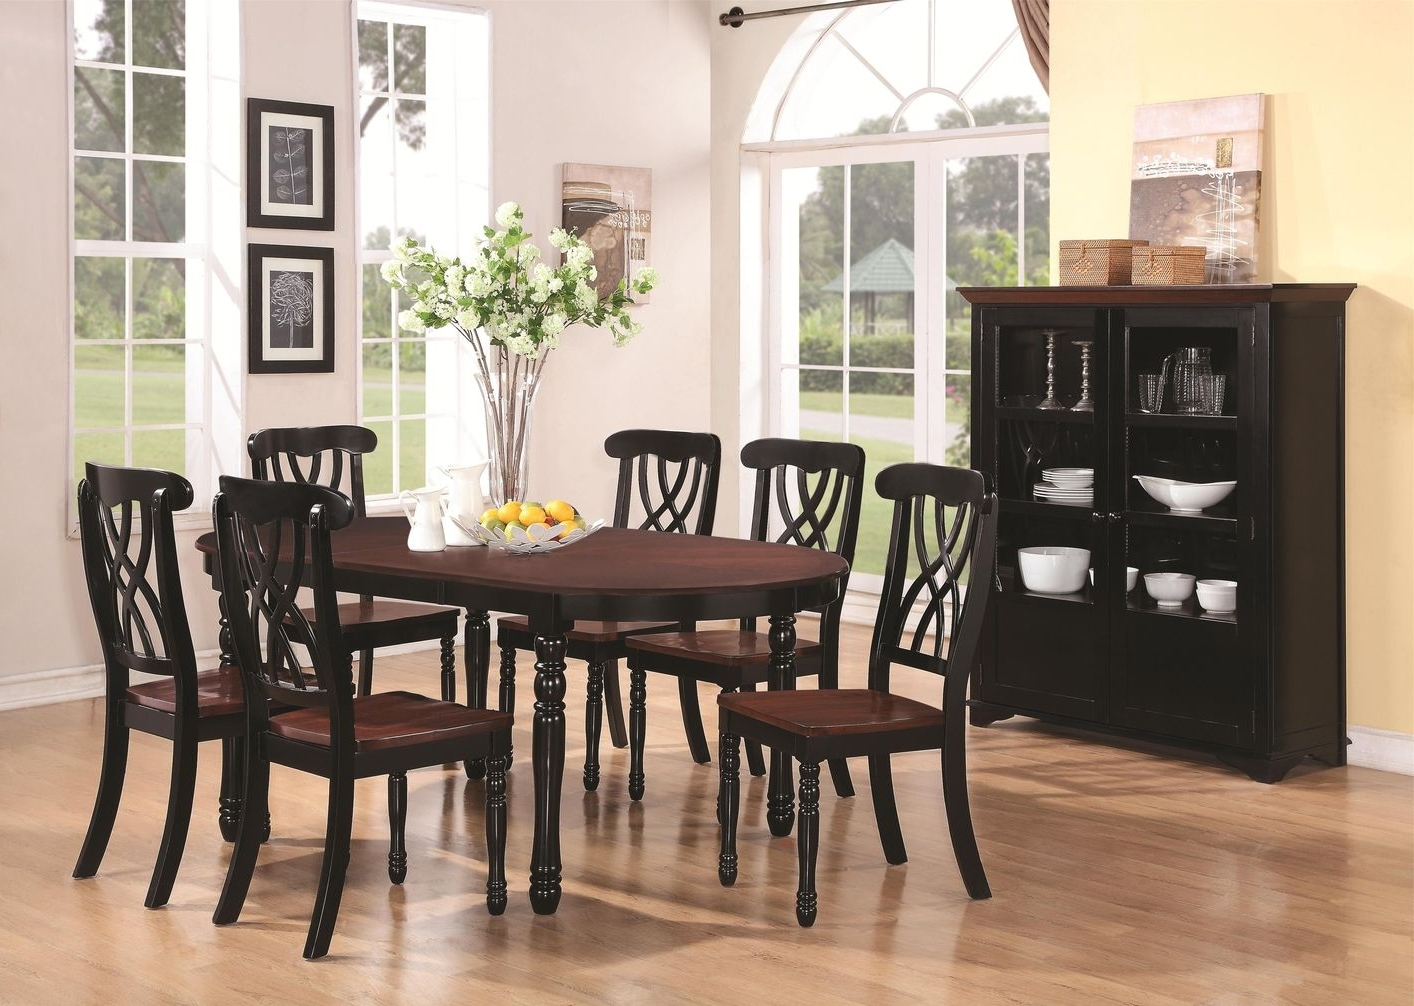 Addison Black And Cherry Wood Dining Table – Steal A Sofa Furniture With Regard To Most Current Dark Wood Dining Tables 6 Chairs (View 22 of 25)